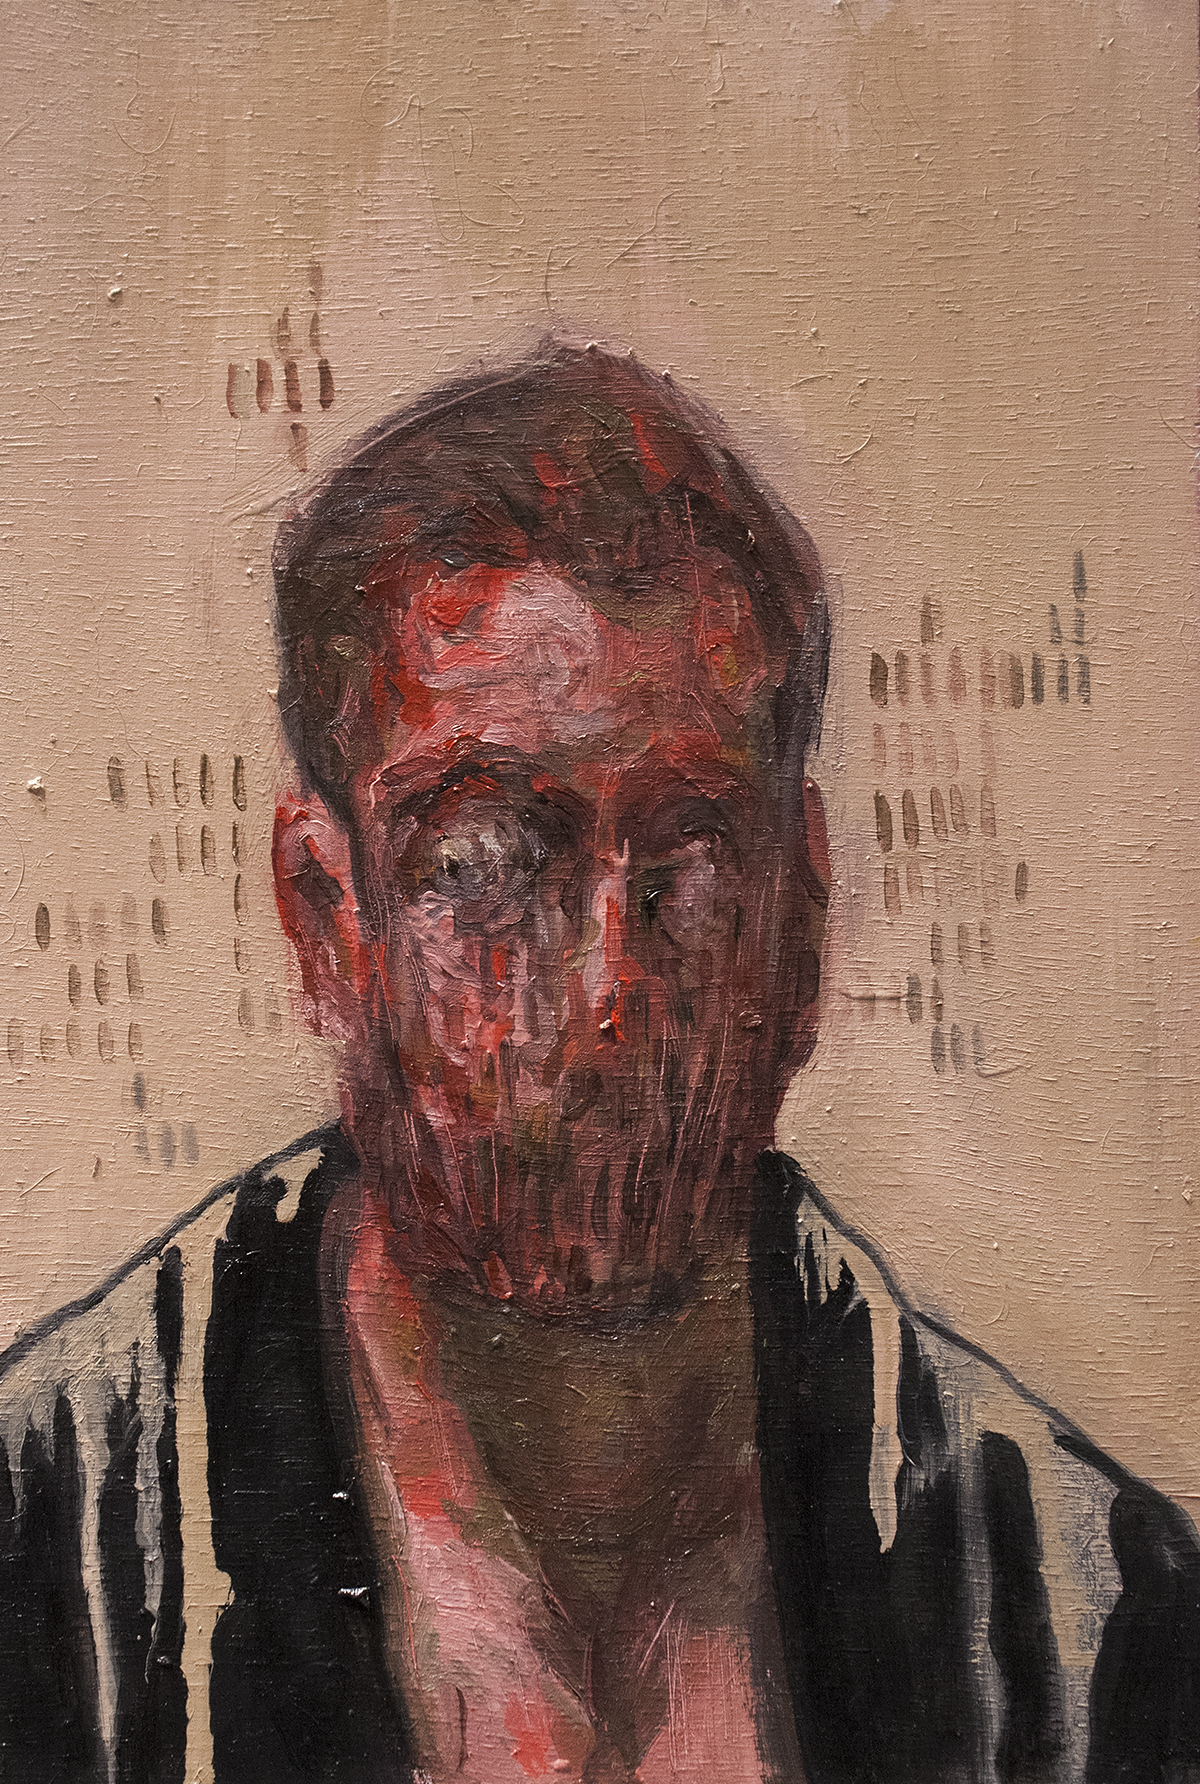 Misericordia / Oil on Wood / 19.5 x 29.5 cm / 2018